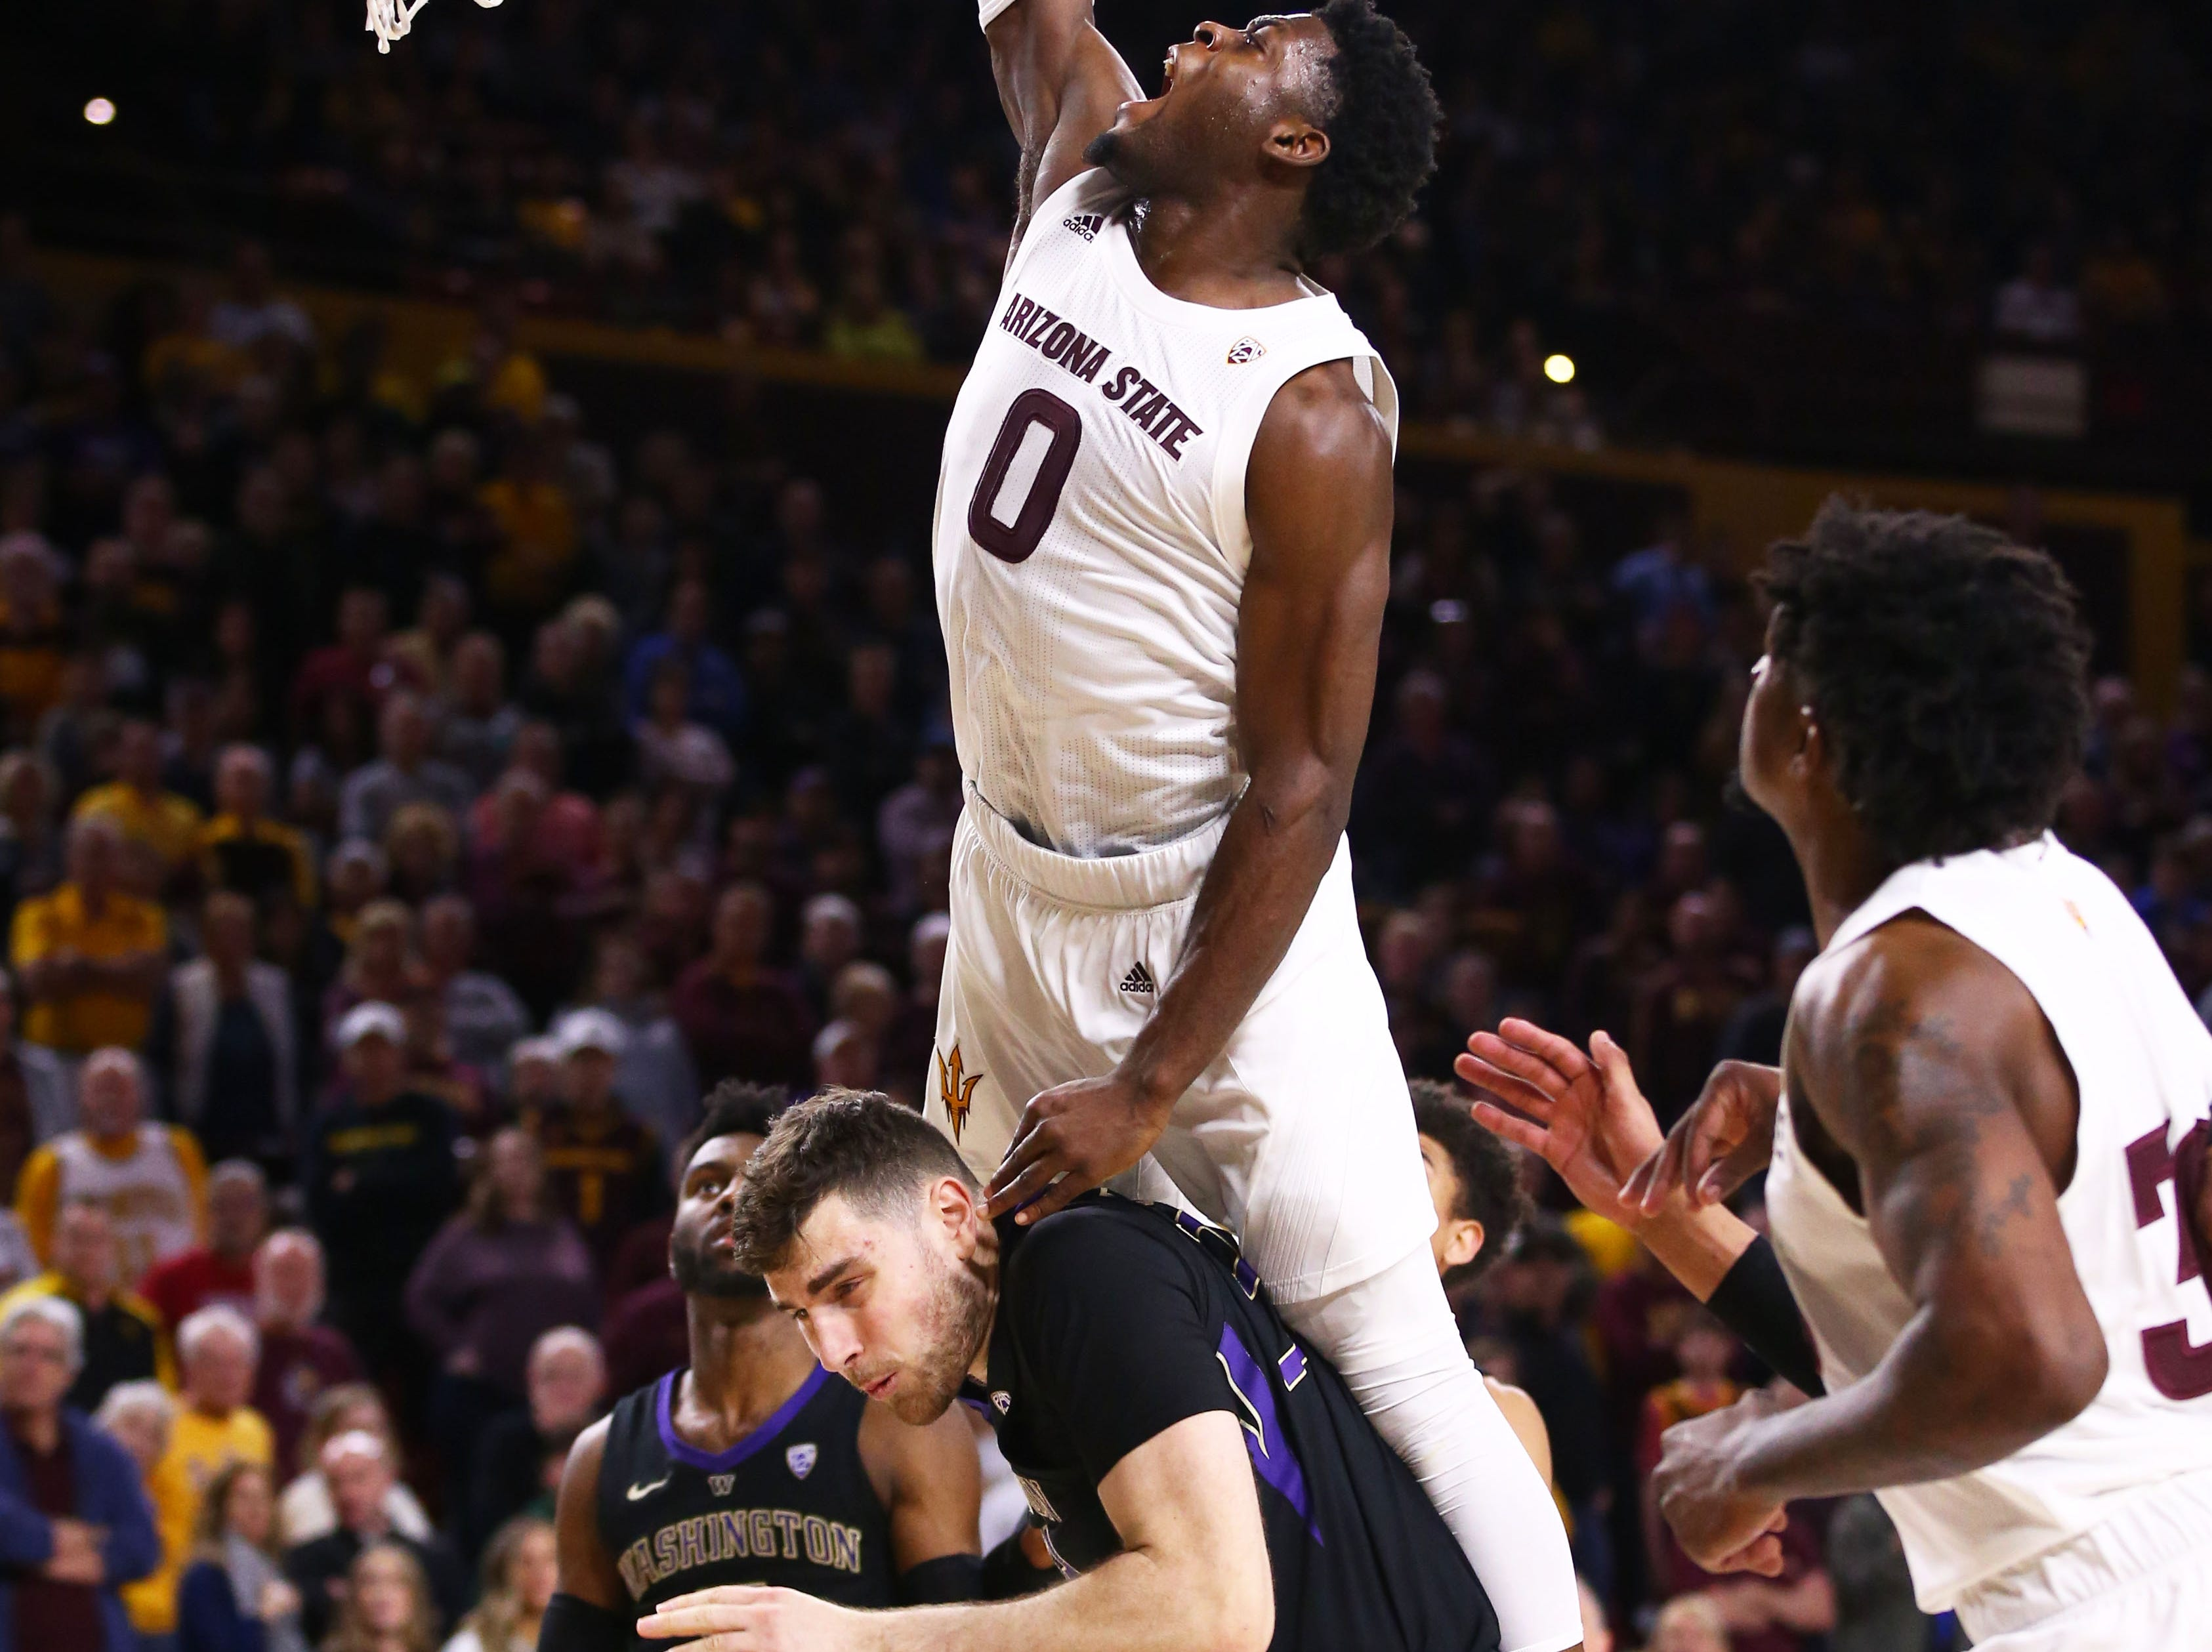 Arizona State Sun Devils guard Luguentz Dort misses a dunk against the Washington Huskies in the second half on Feb. 9 at Wells Fargo Arena in Tempe.